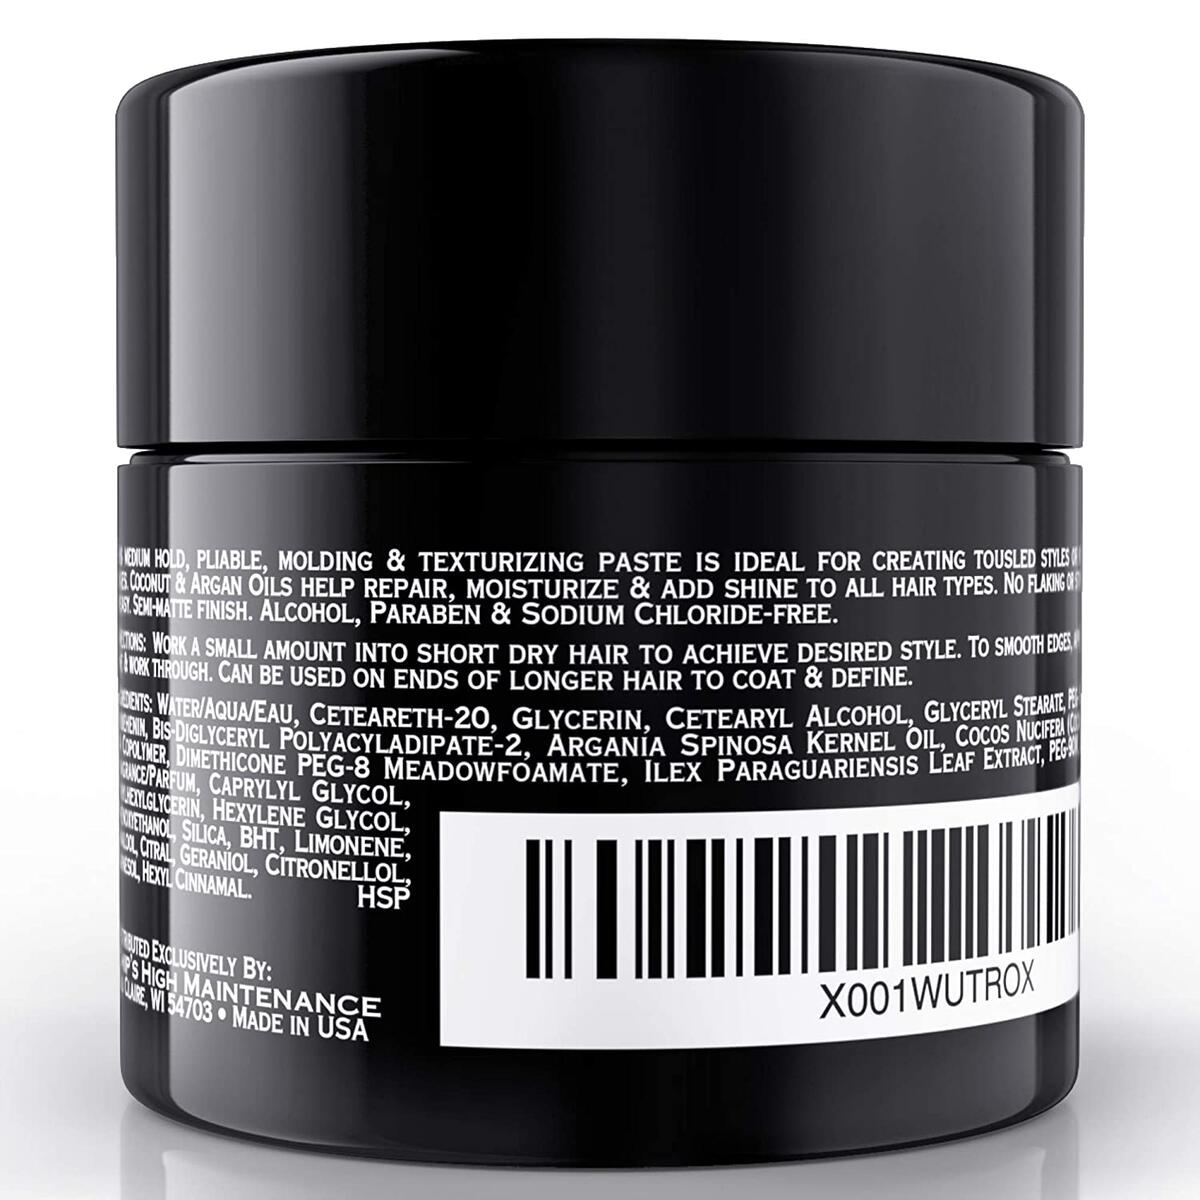 Texture Paste 2 oz - Chips High Maintenance - Gift for Men